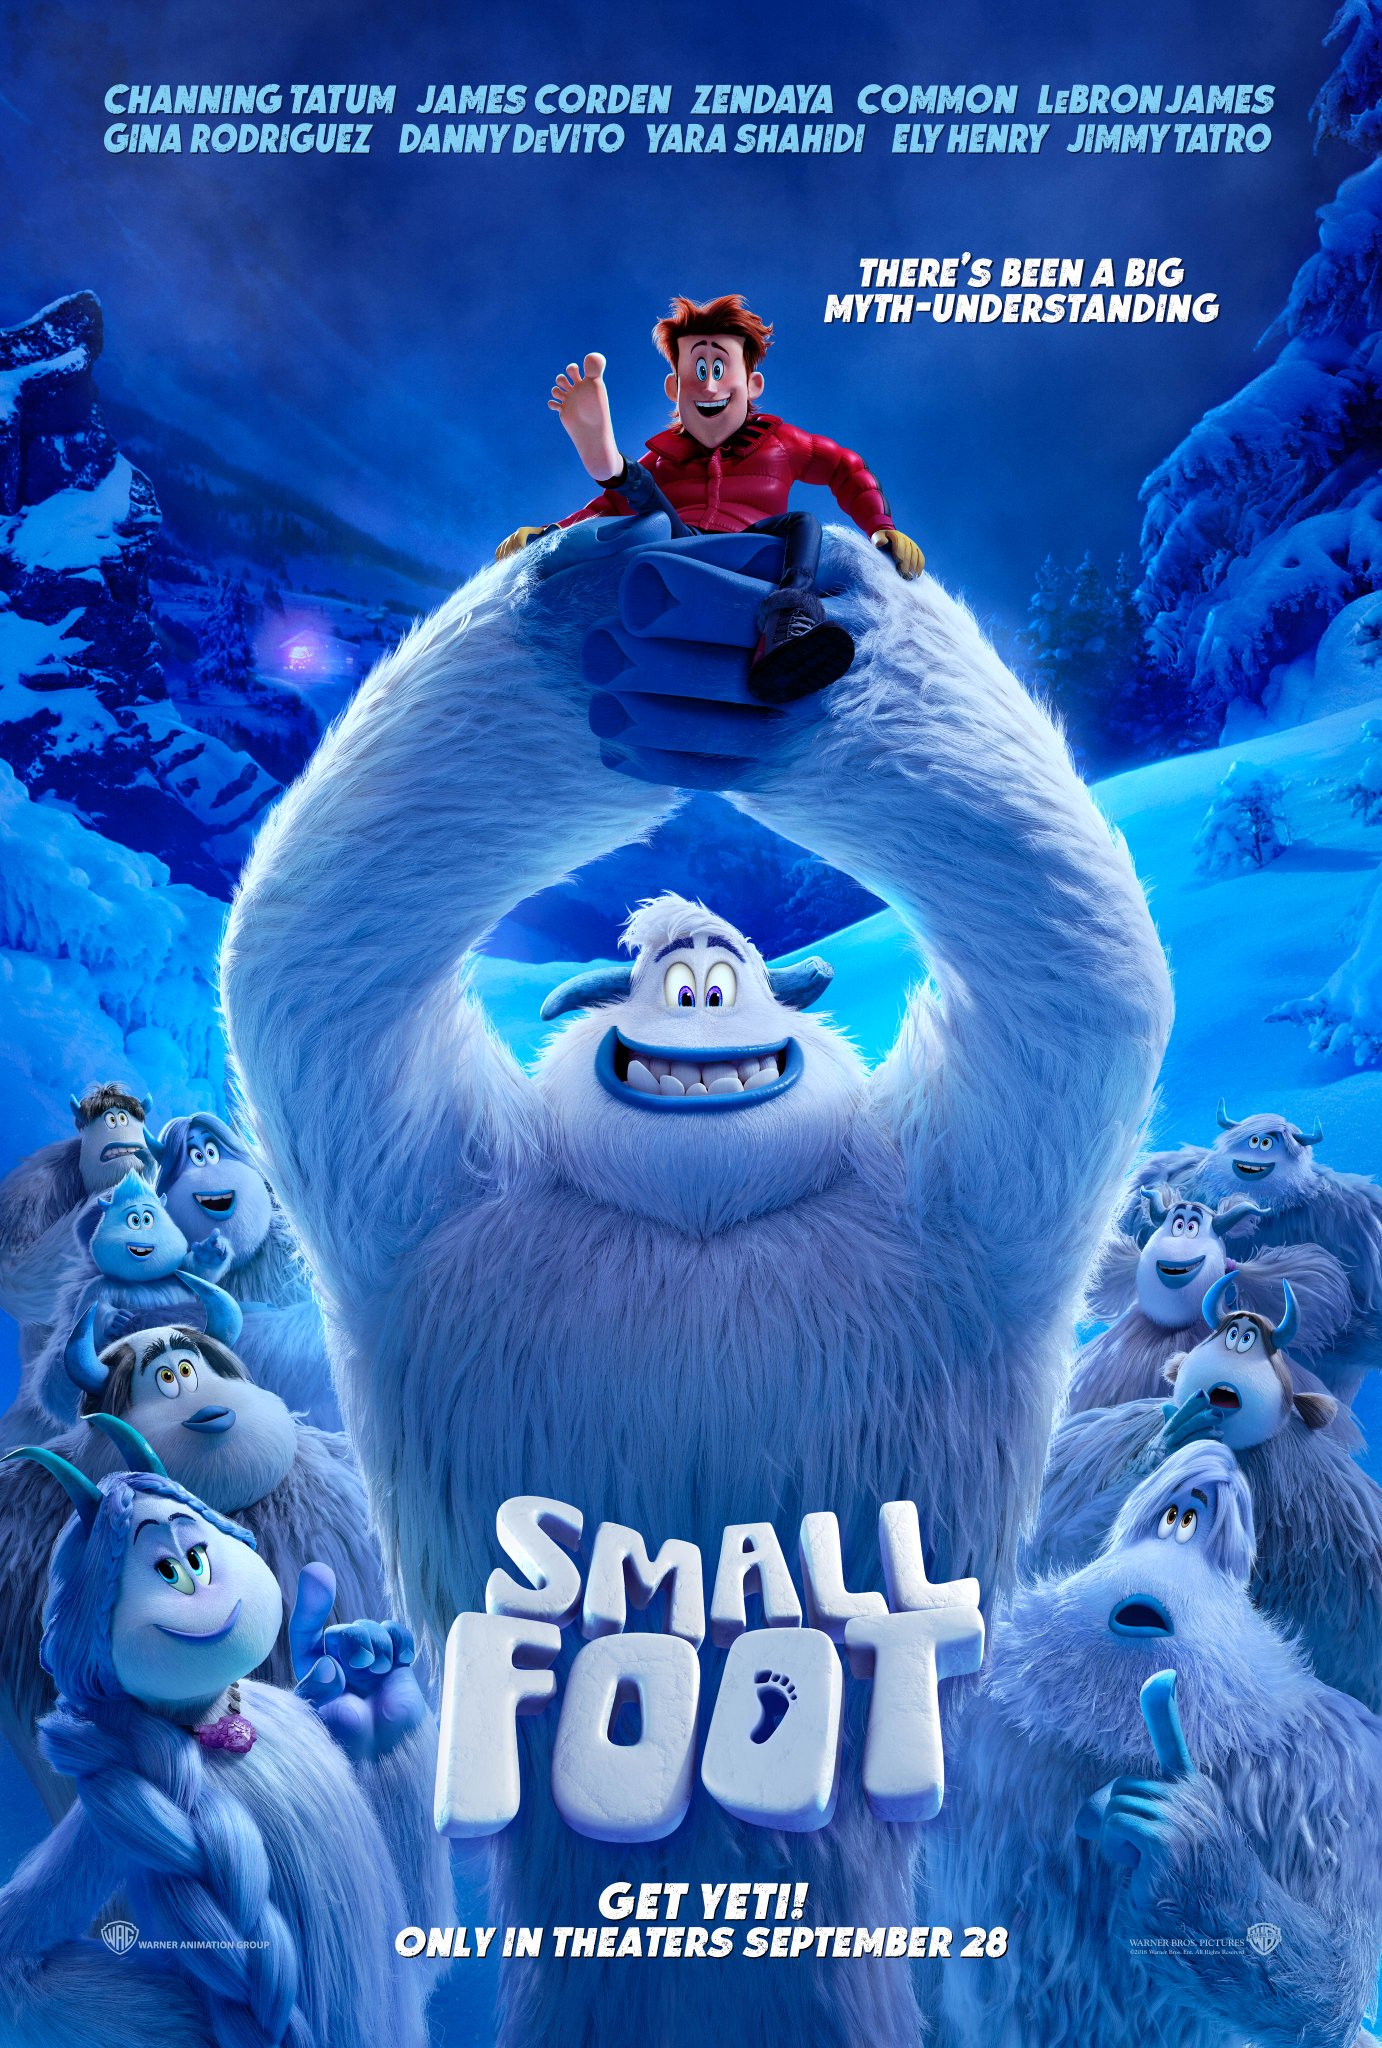 Smallfoot - Credit / score mixer assistant